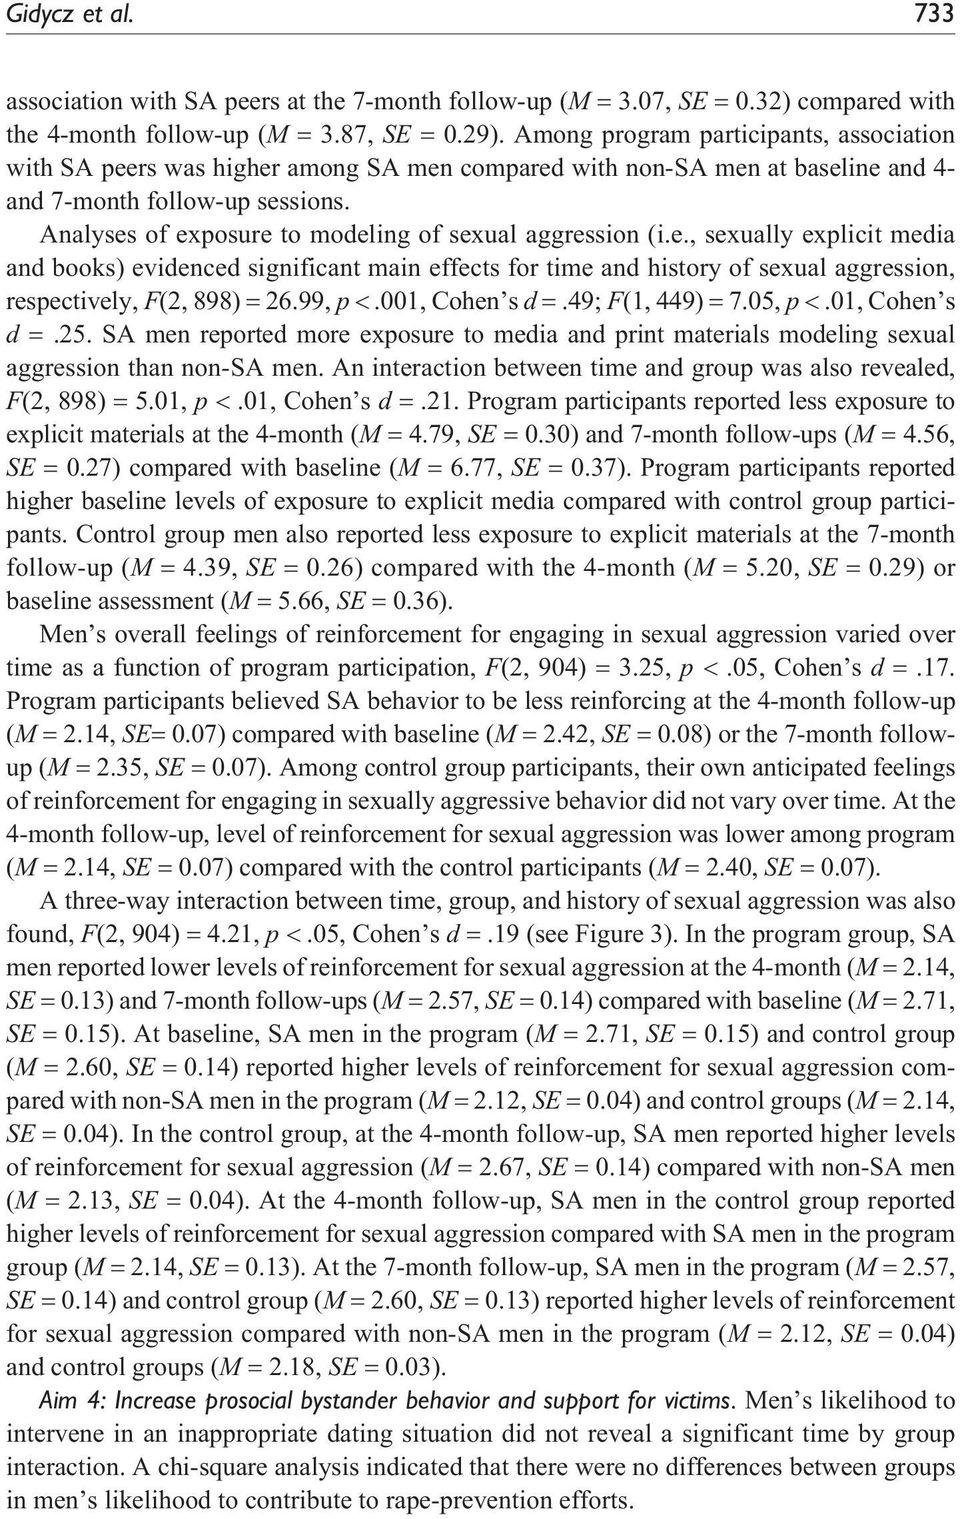 Analyses of exposure to modeling of sexual aggression (i.e., sexually explicit media and books) evidenced significant main effects for time and history of sexual aggression, respectively, F(2, 898) = 26.